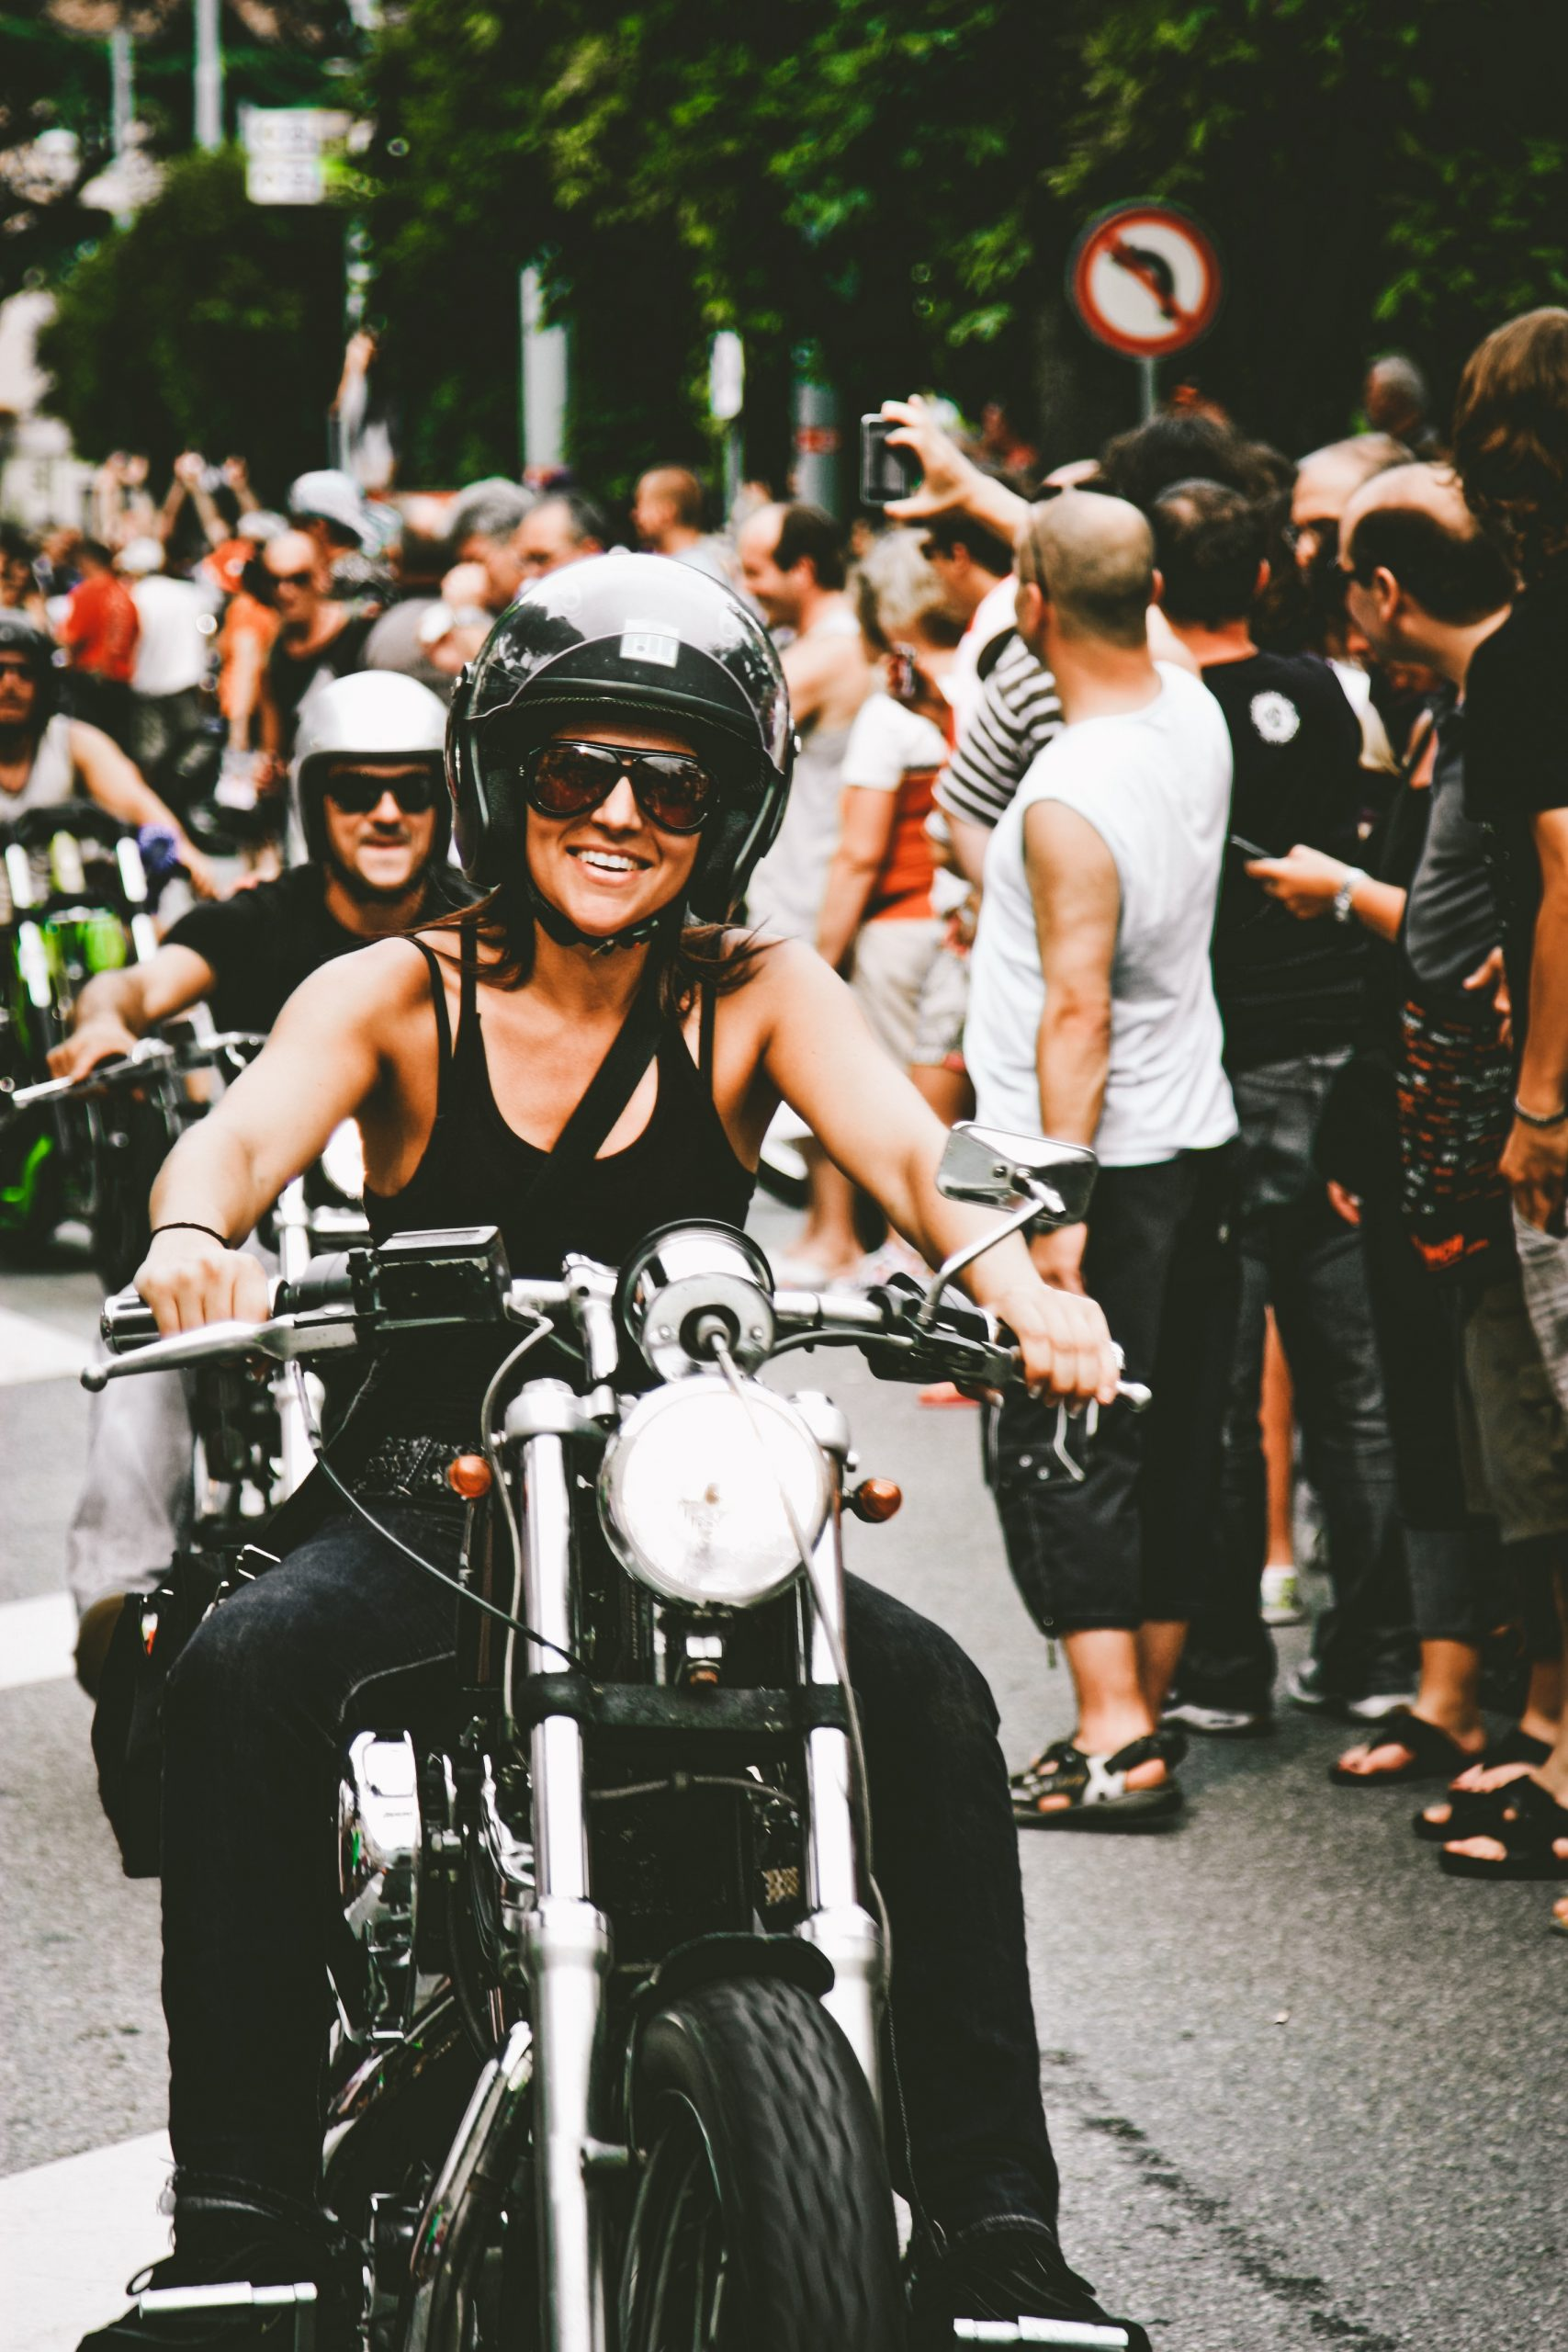 Girls just wanna have fun harley davidson